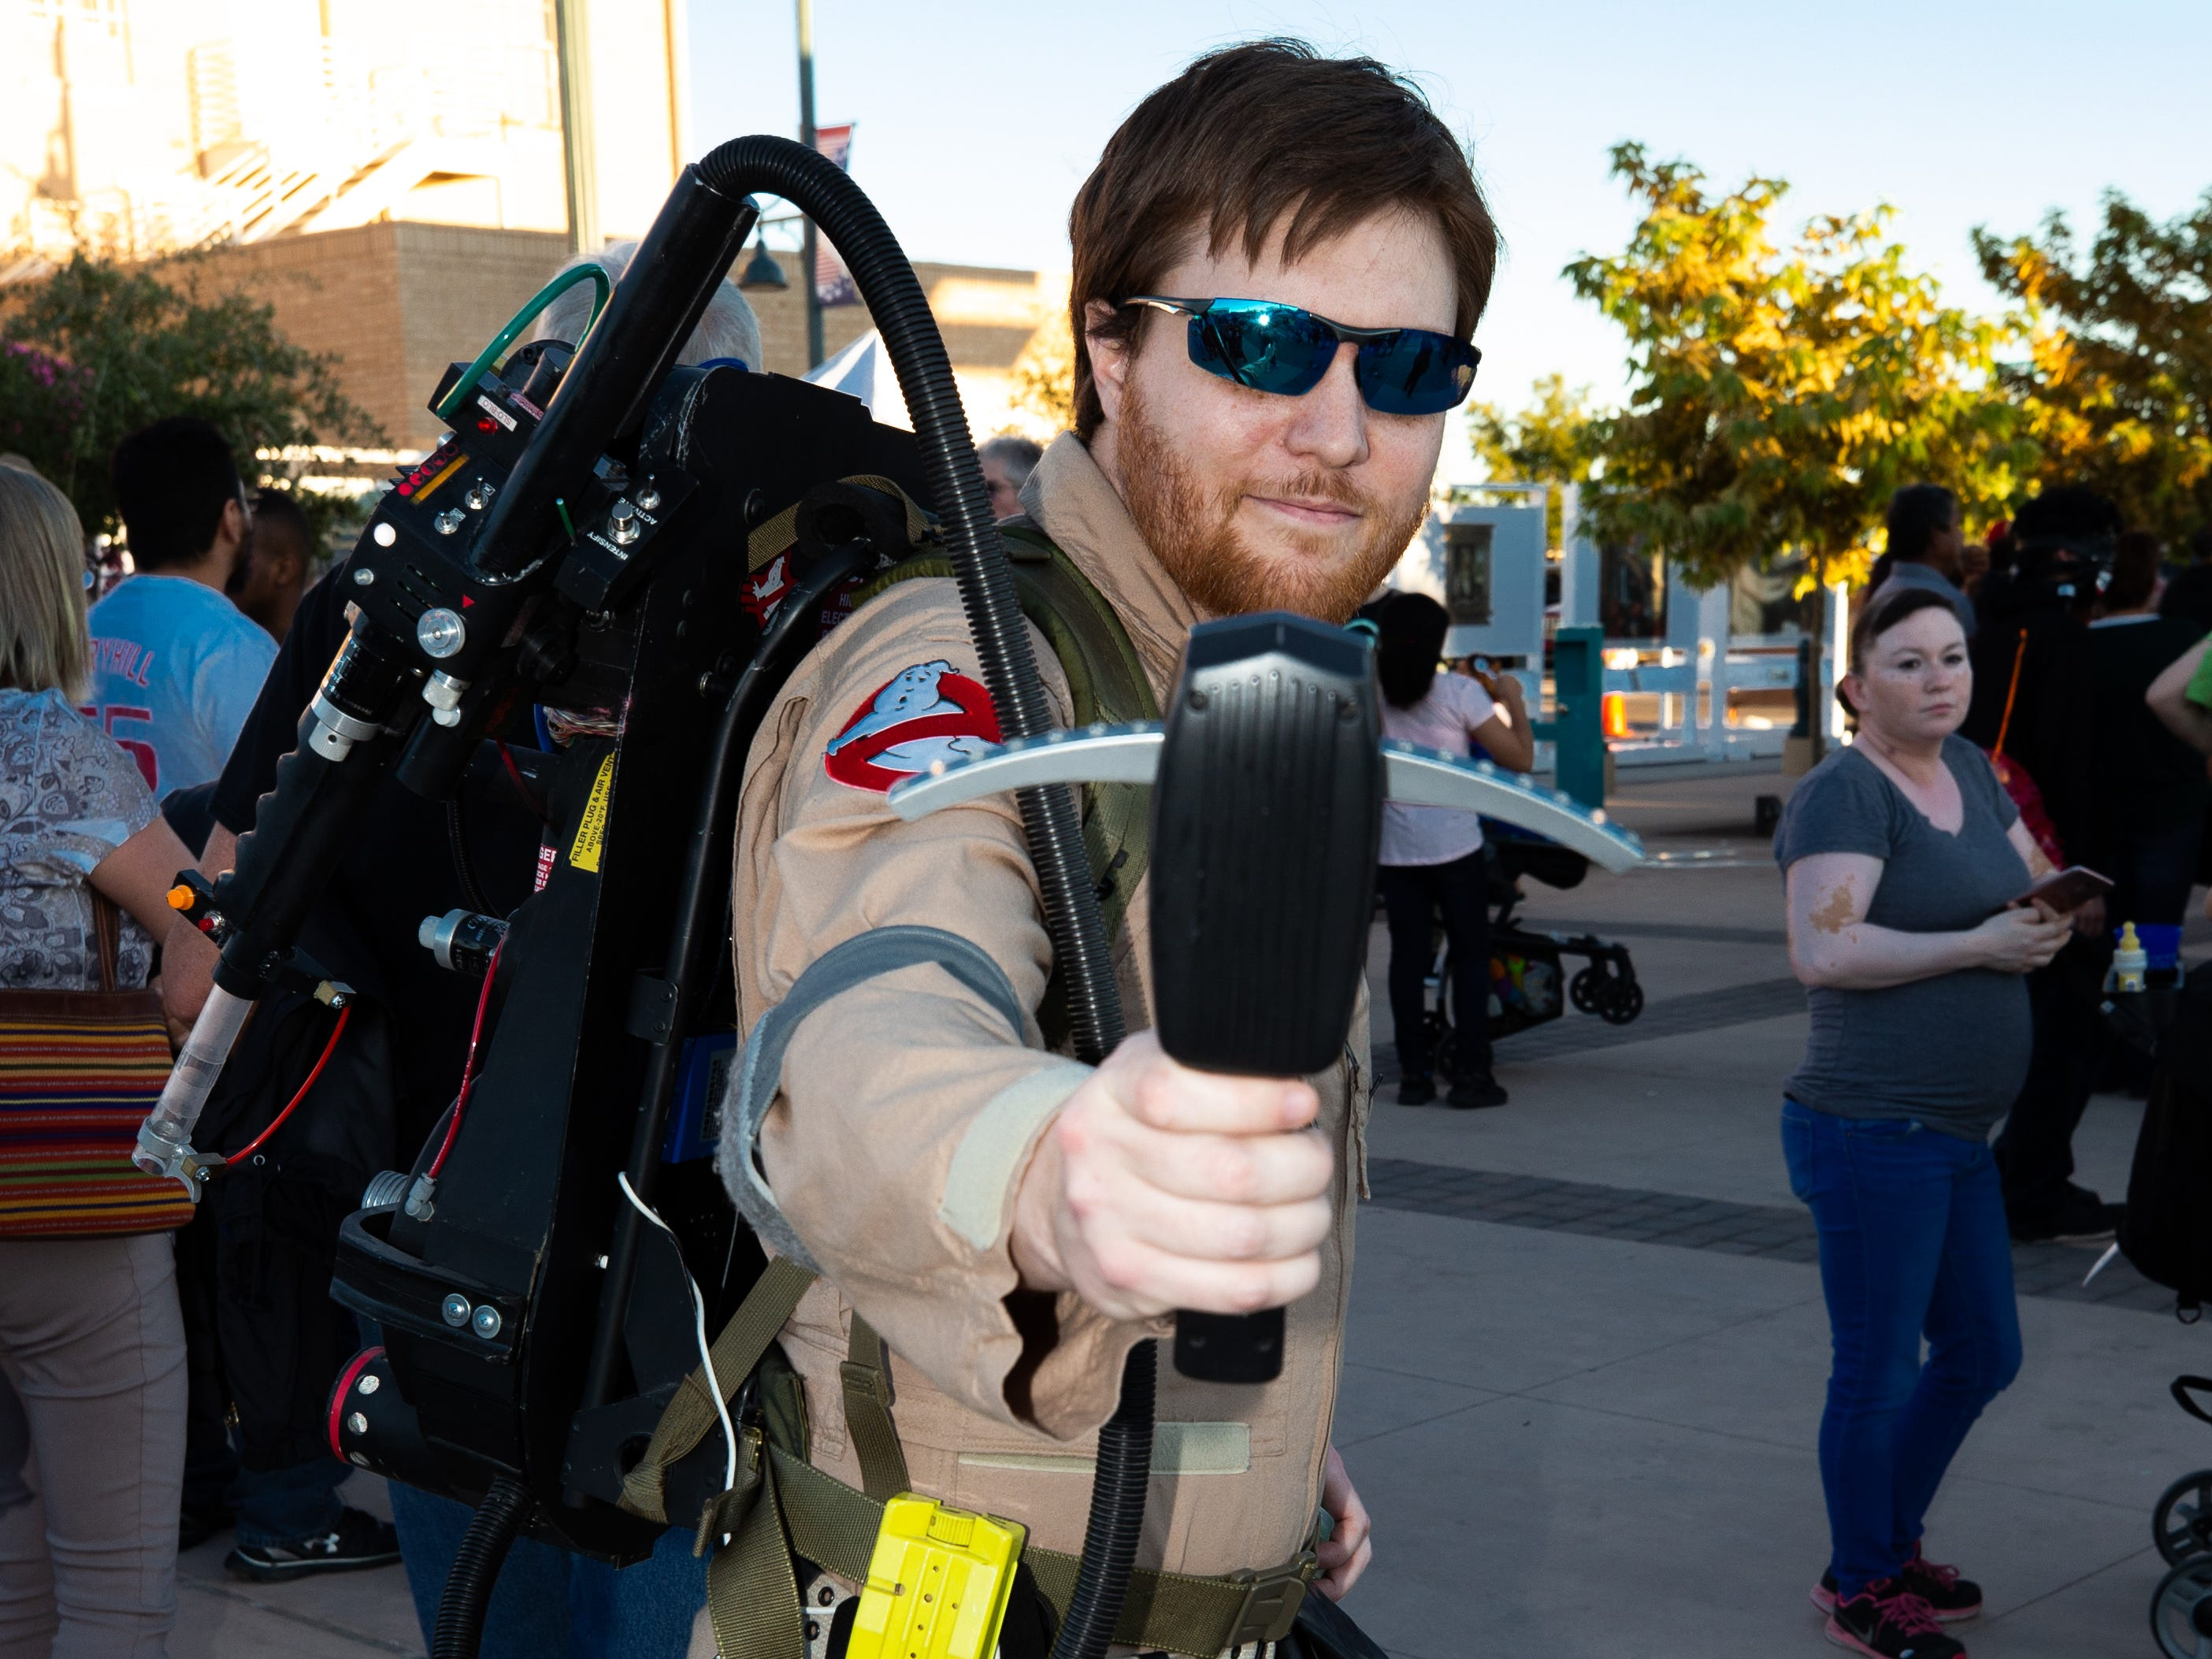 Ghostbuster Shawn Gealow at the 2018 Zombie Walk held on Saturday, Oct. 27, 2018.